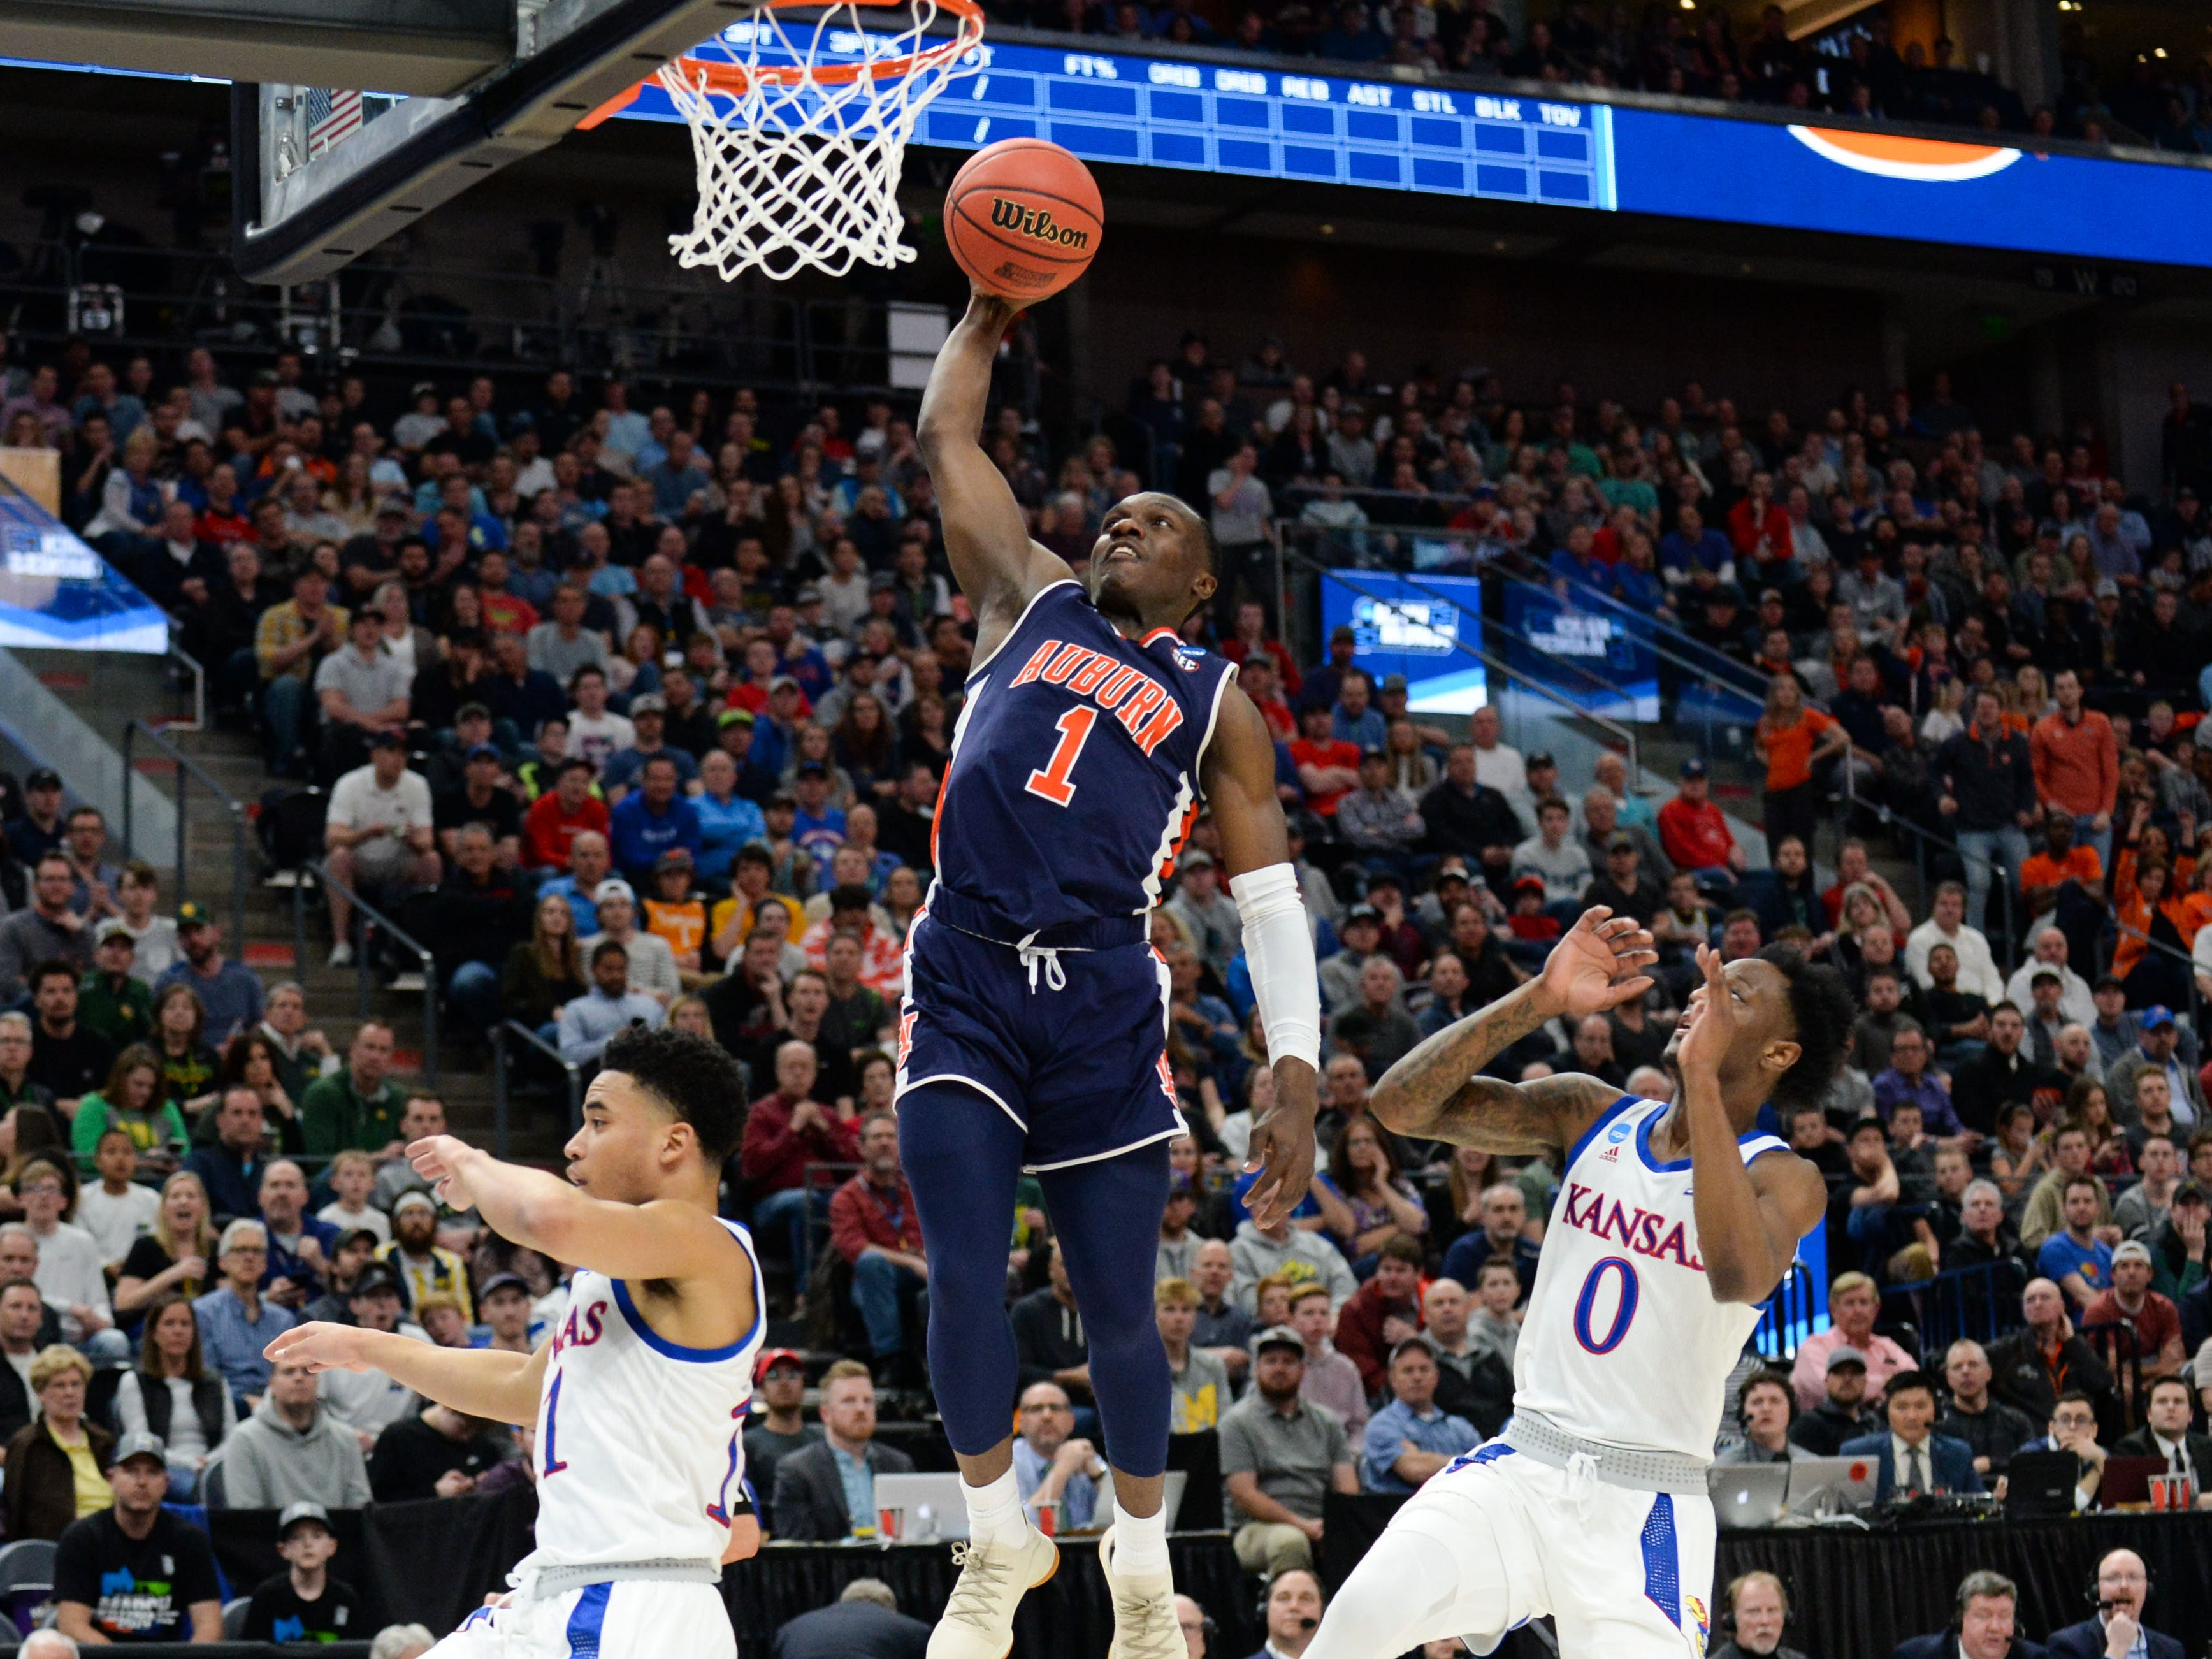 Auburn Jared Harper (1) goes up for a basket ahead of Kansas guard Marcus Garrett (0) during the NCAA Tournament at Vivint Smart Home Arena on March 23, 2019, in Salt Lake City.